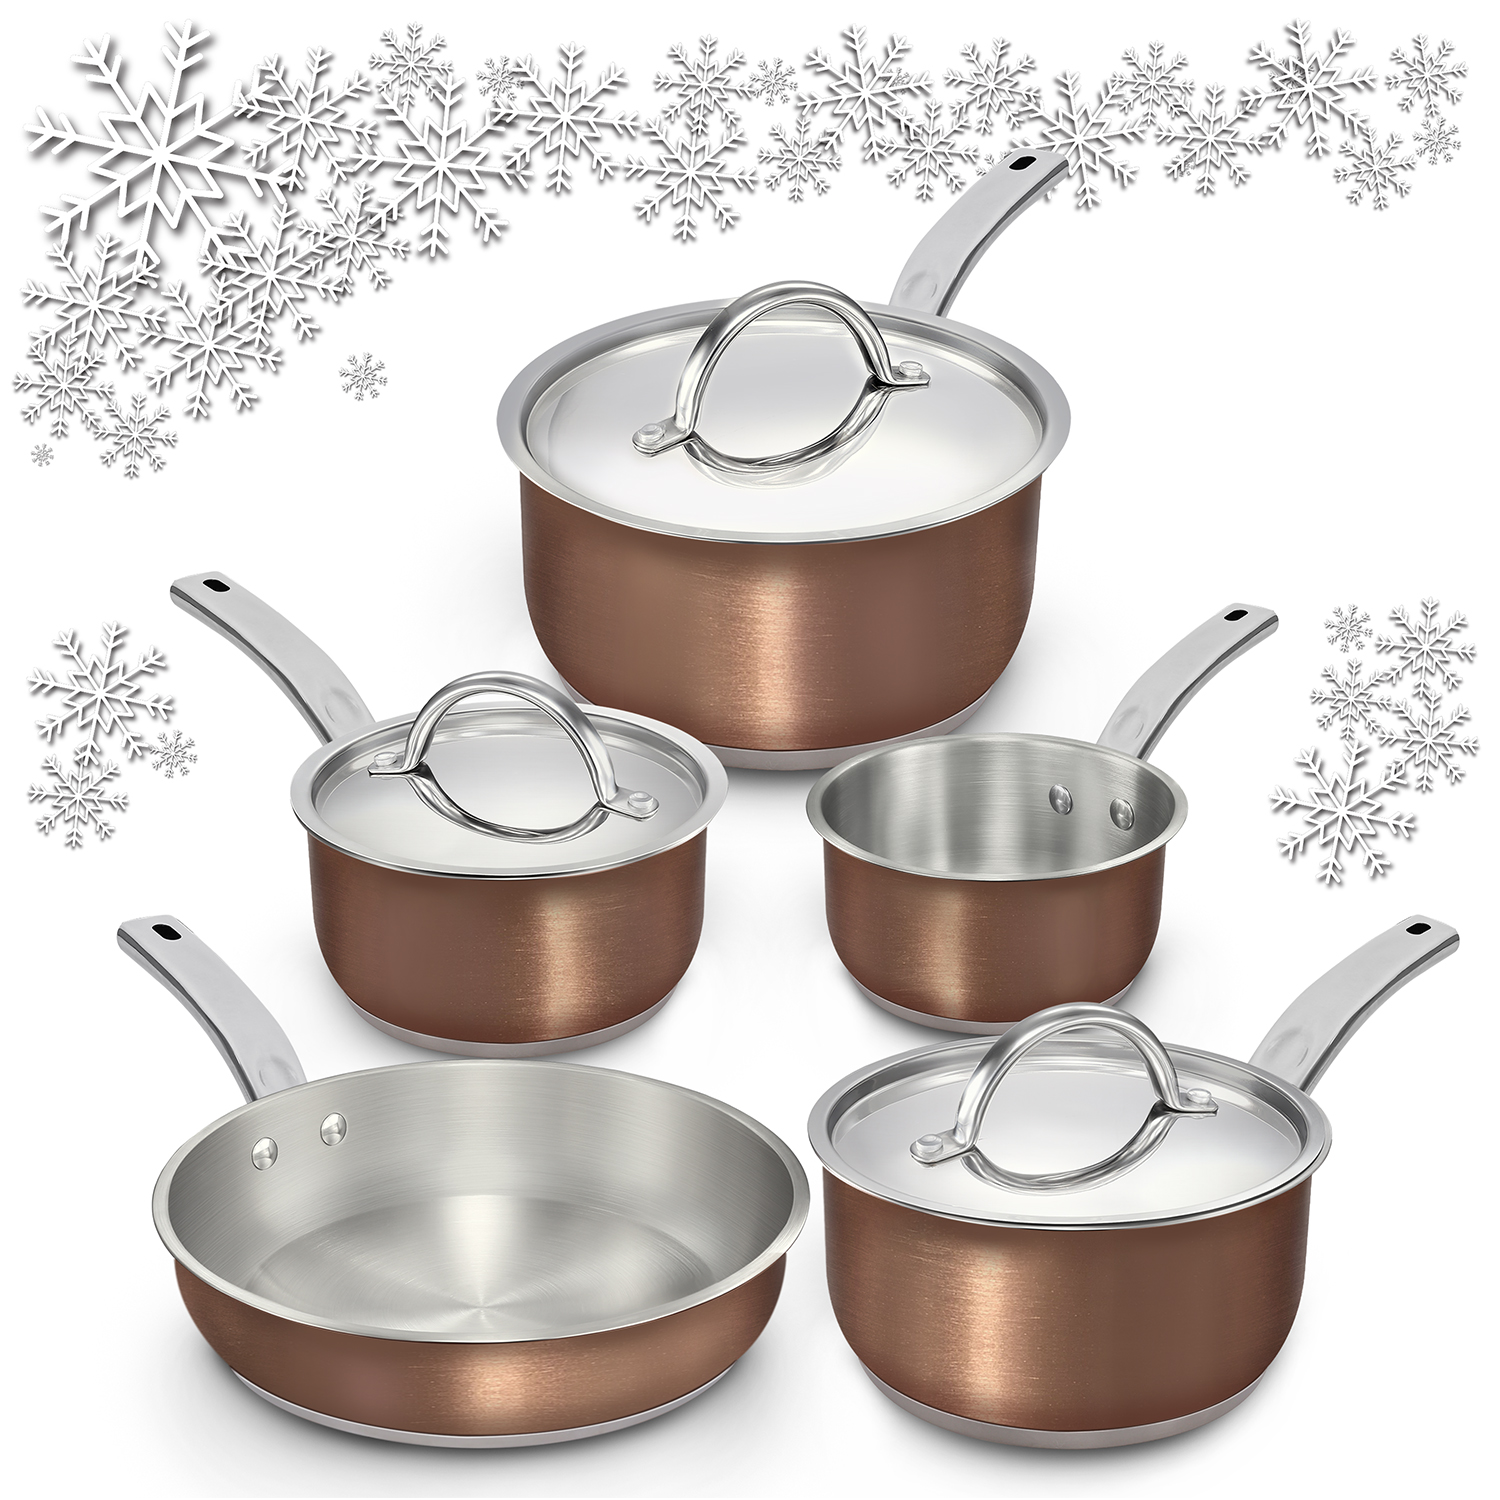 Tri-Ply Stainless Steel Pots and Pans Set, JUST $89.99 for Holiday